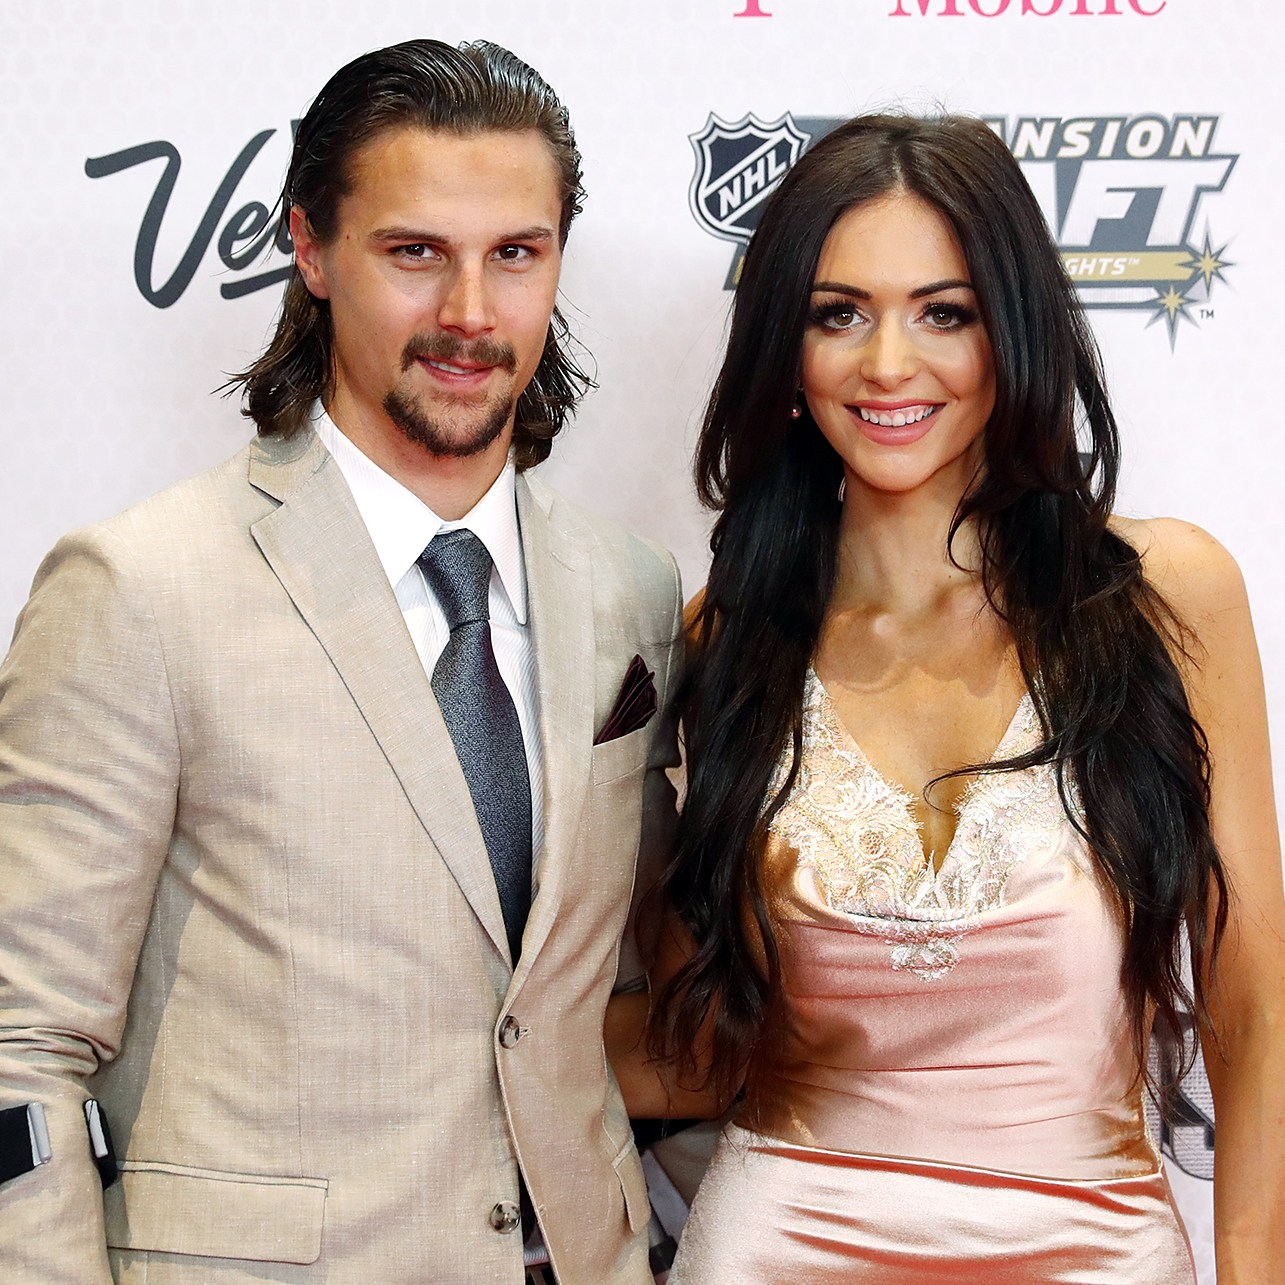 NHL Star Erik Karlsson and Wife Melinda Lose Son a Month Before Due Date